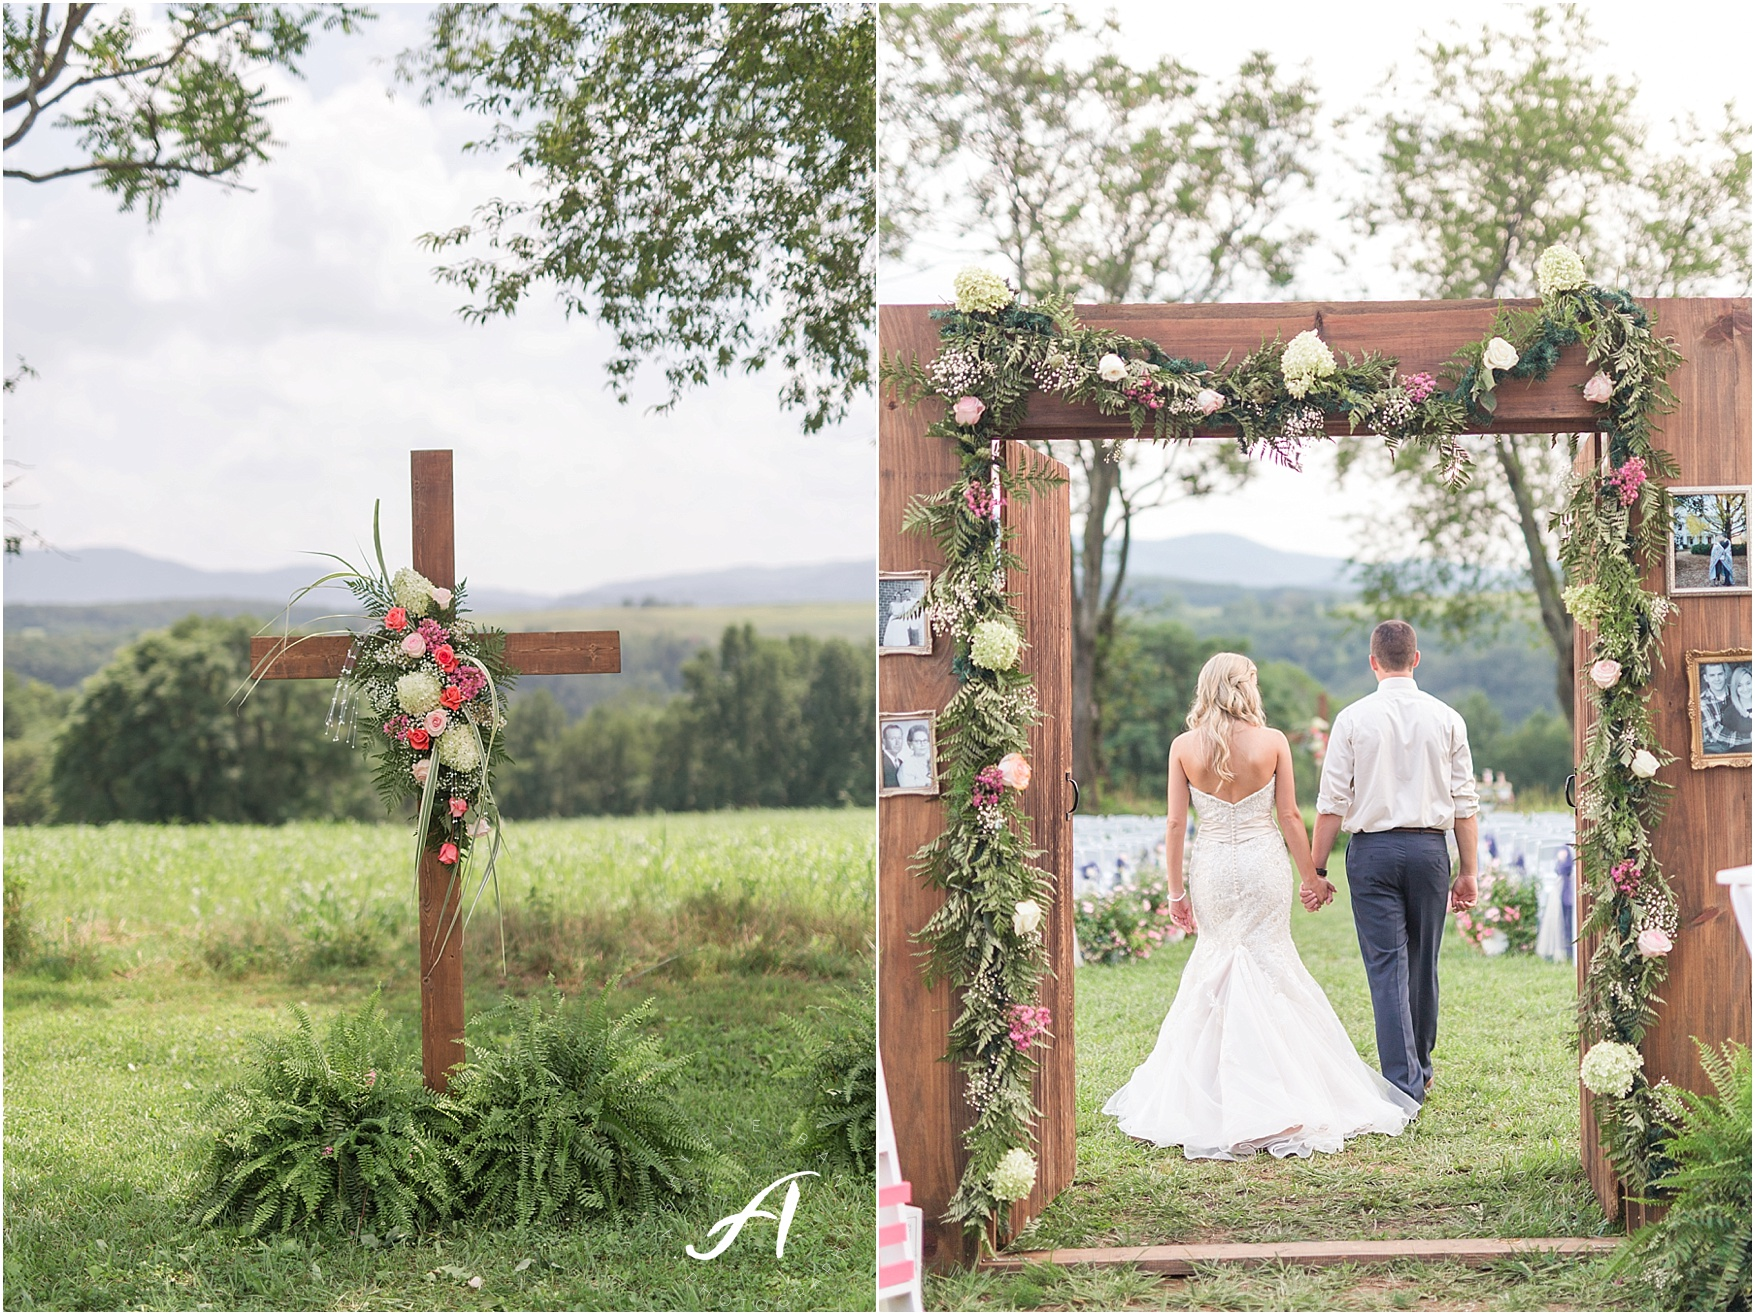 navy and coral mountain view Wedding at The Glen at The Boxtree Lodge    Braeloch Wedding in Vinton, Virginia    Ashley Eiban Photography    www.ashleyeiban.com